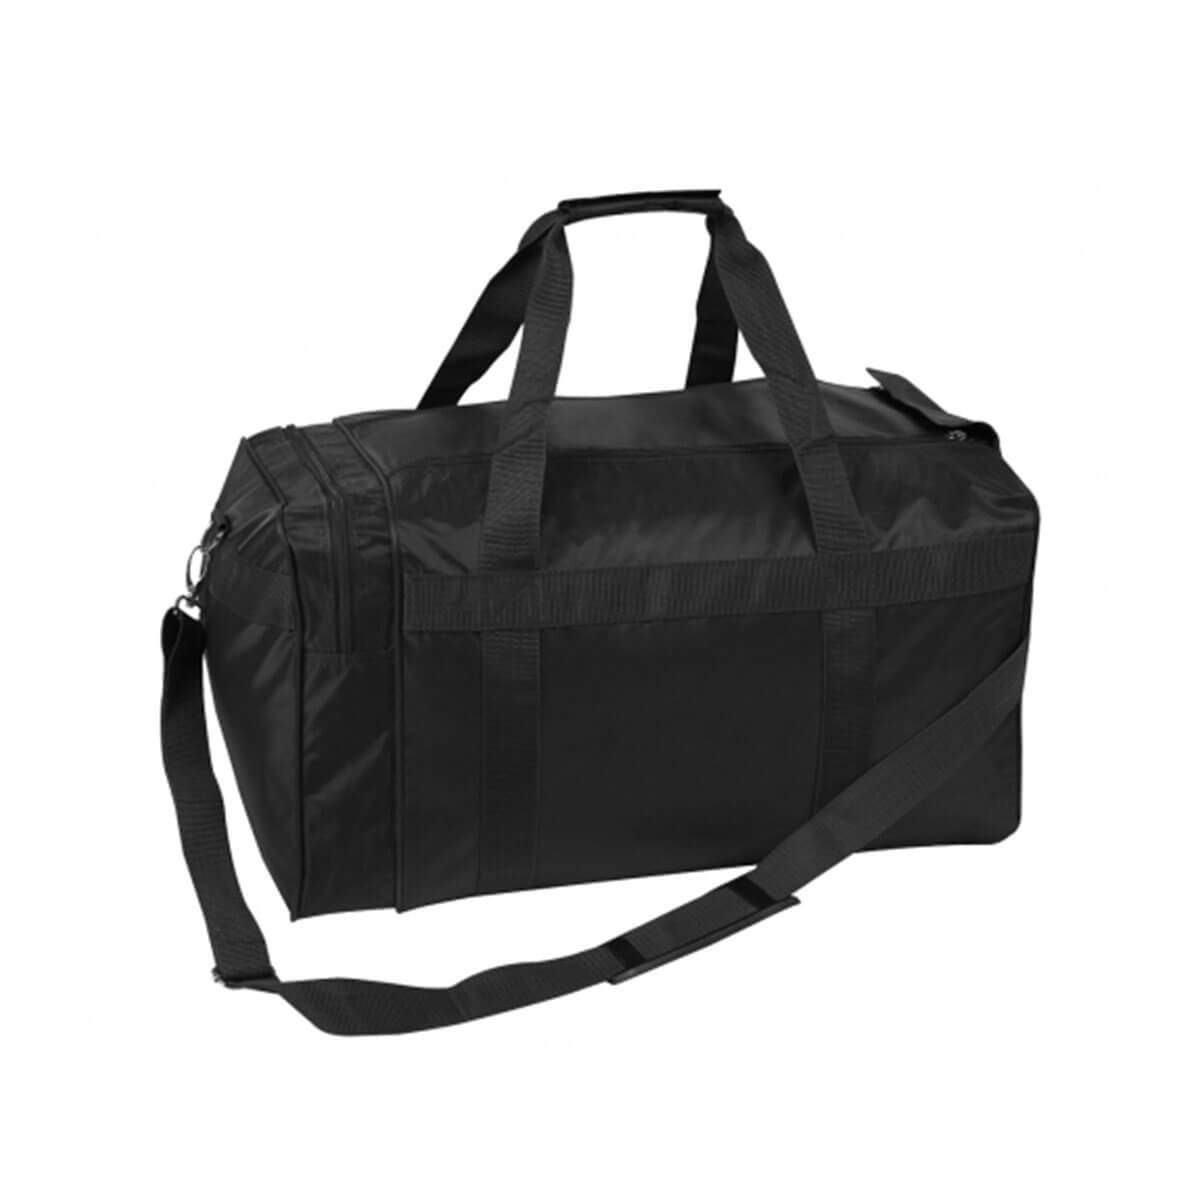 Nylon Sports Bag-Black